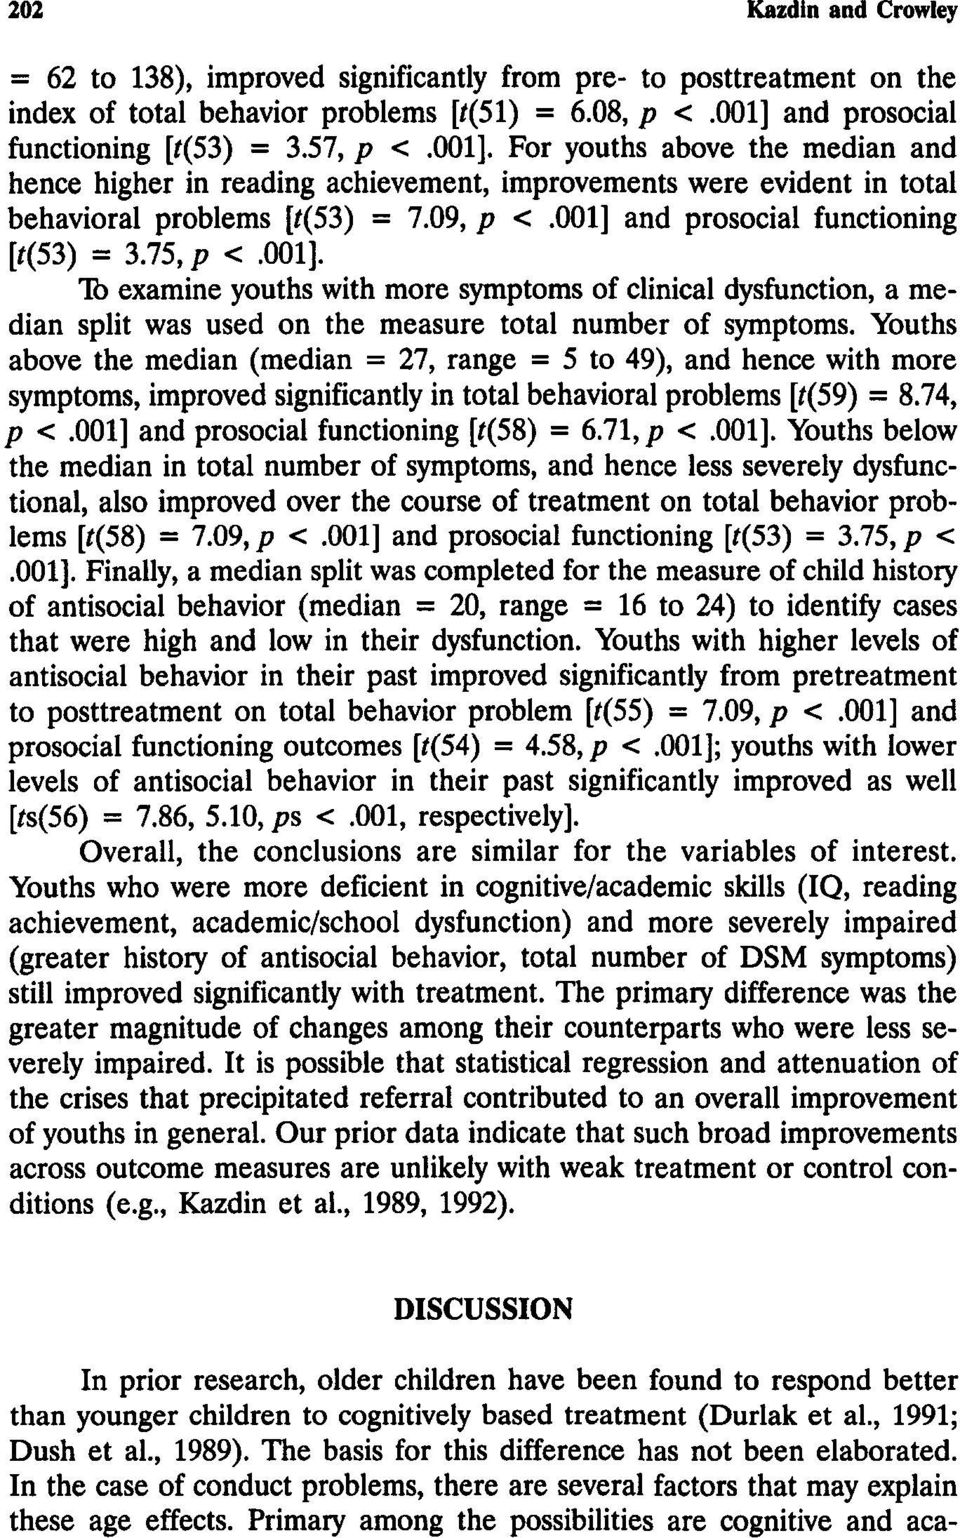 001]. To examine youths with more symptoms of clinical dysfunction, a median split was used on the measure total number of symptoms.